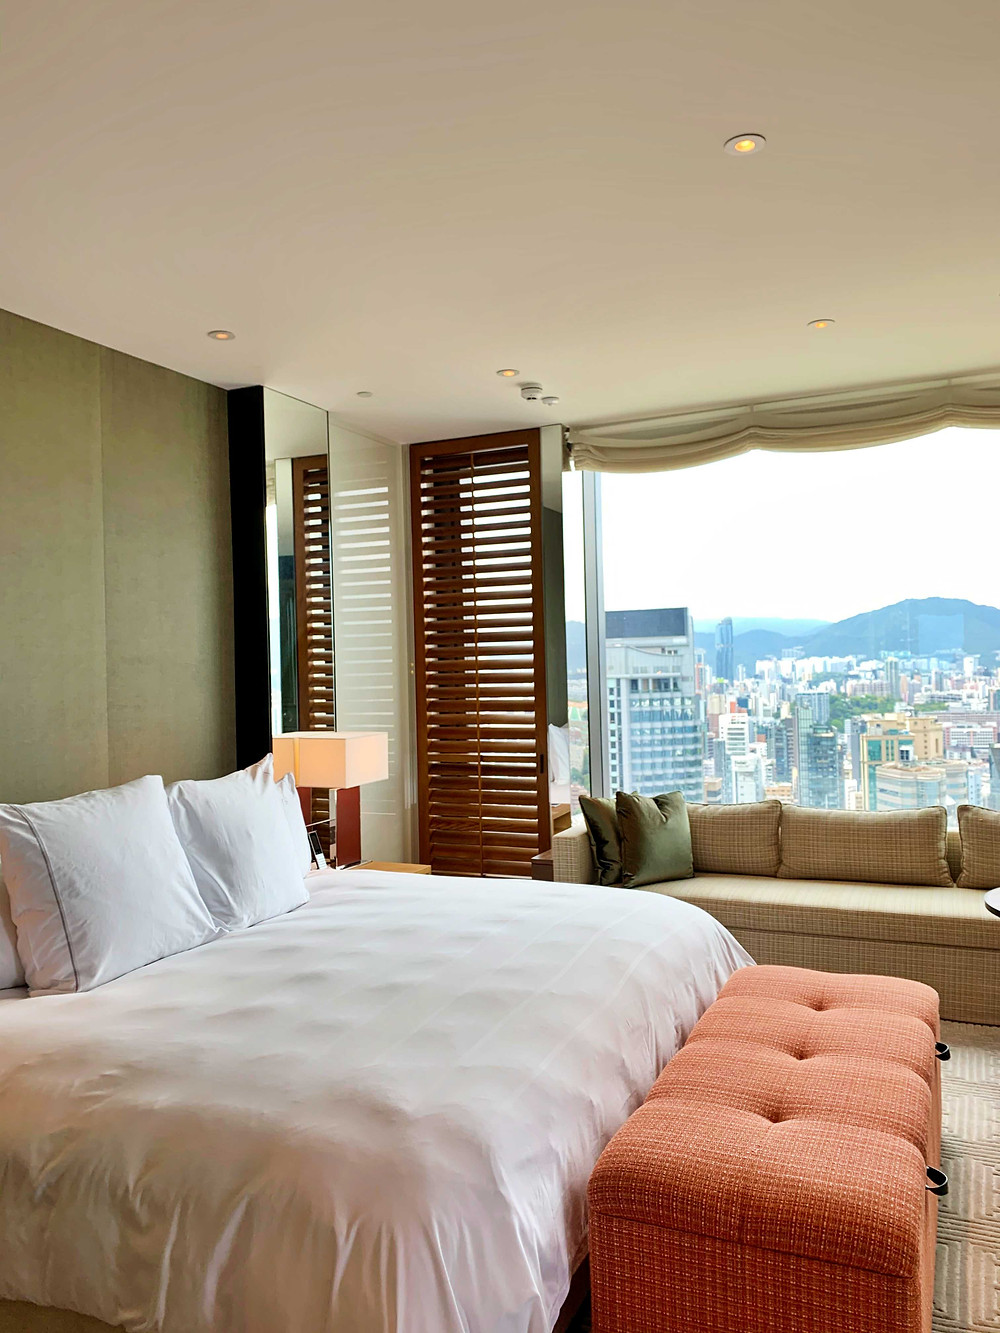 Bedroom at Rosewood Hong Kong